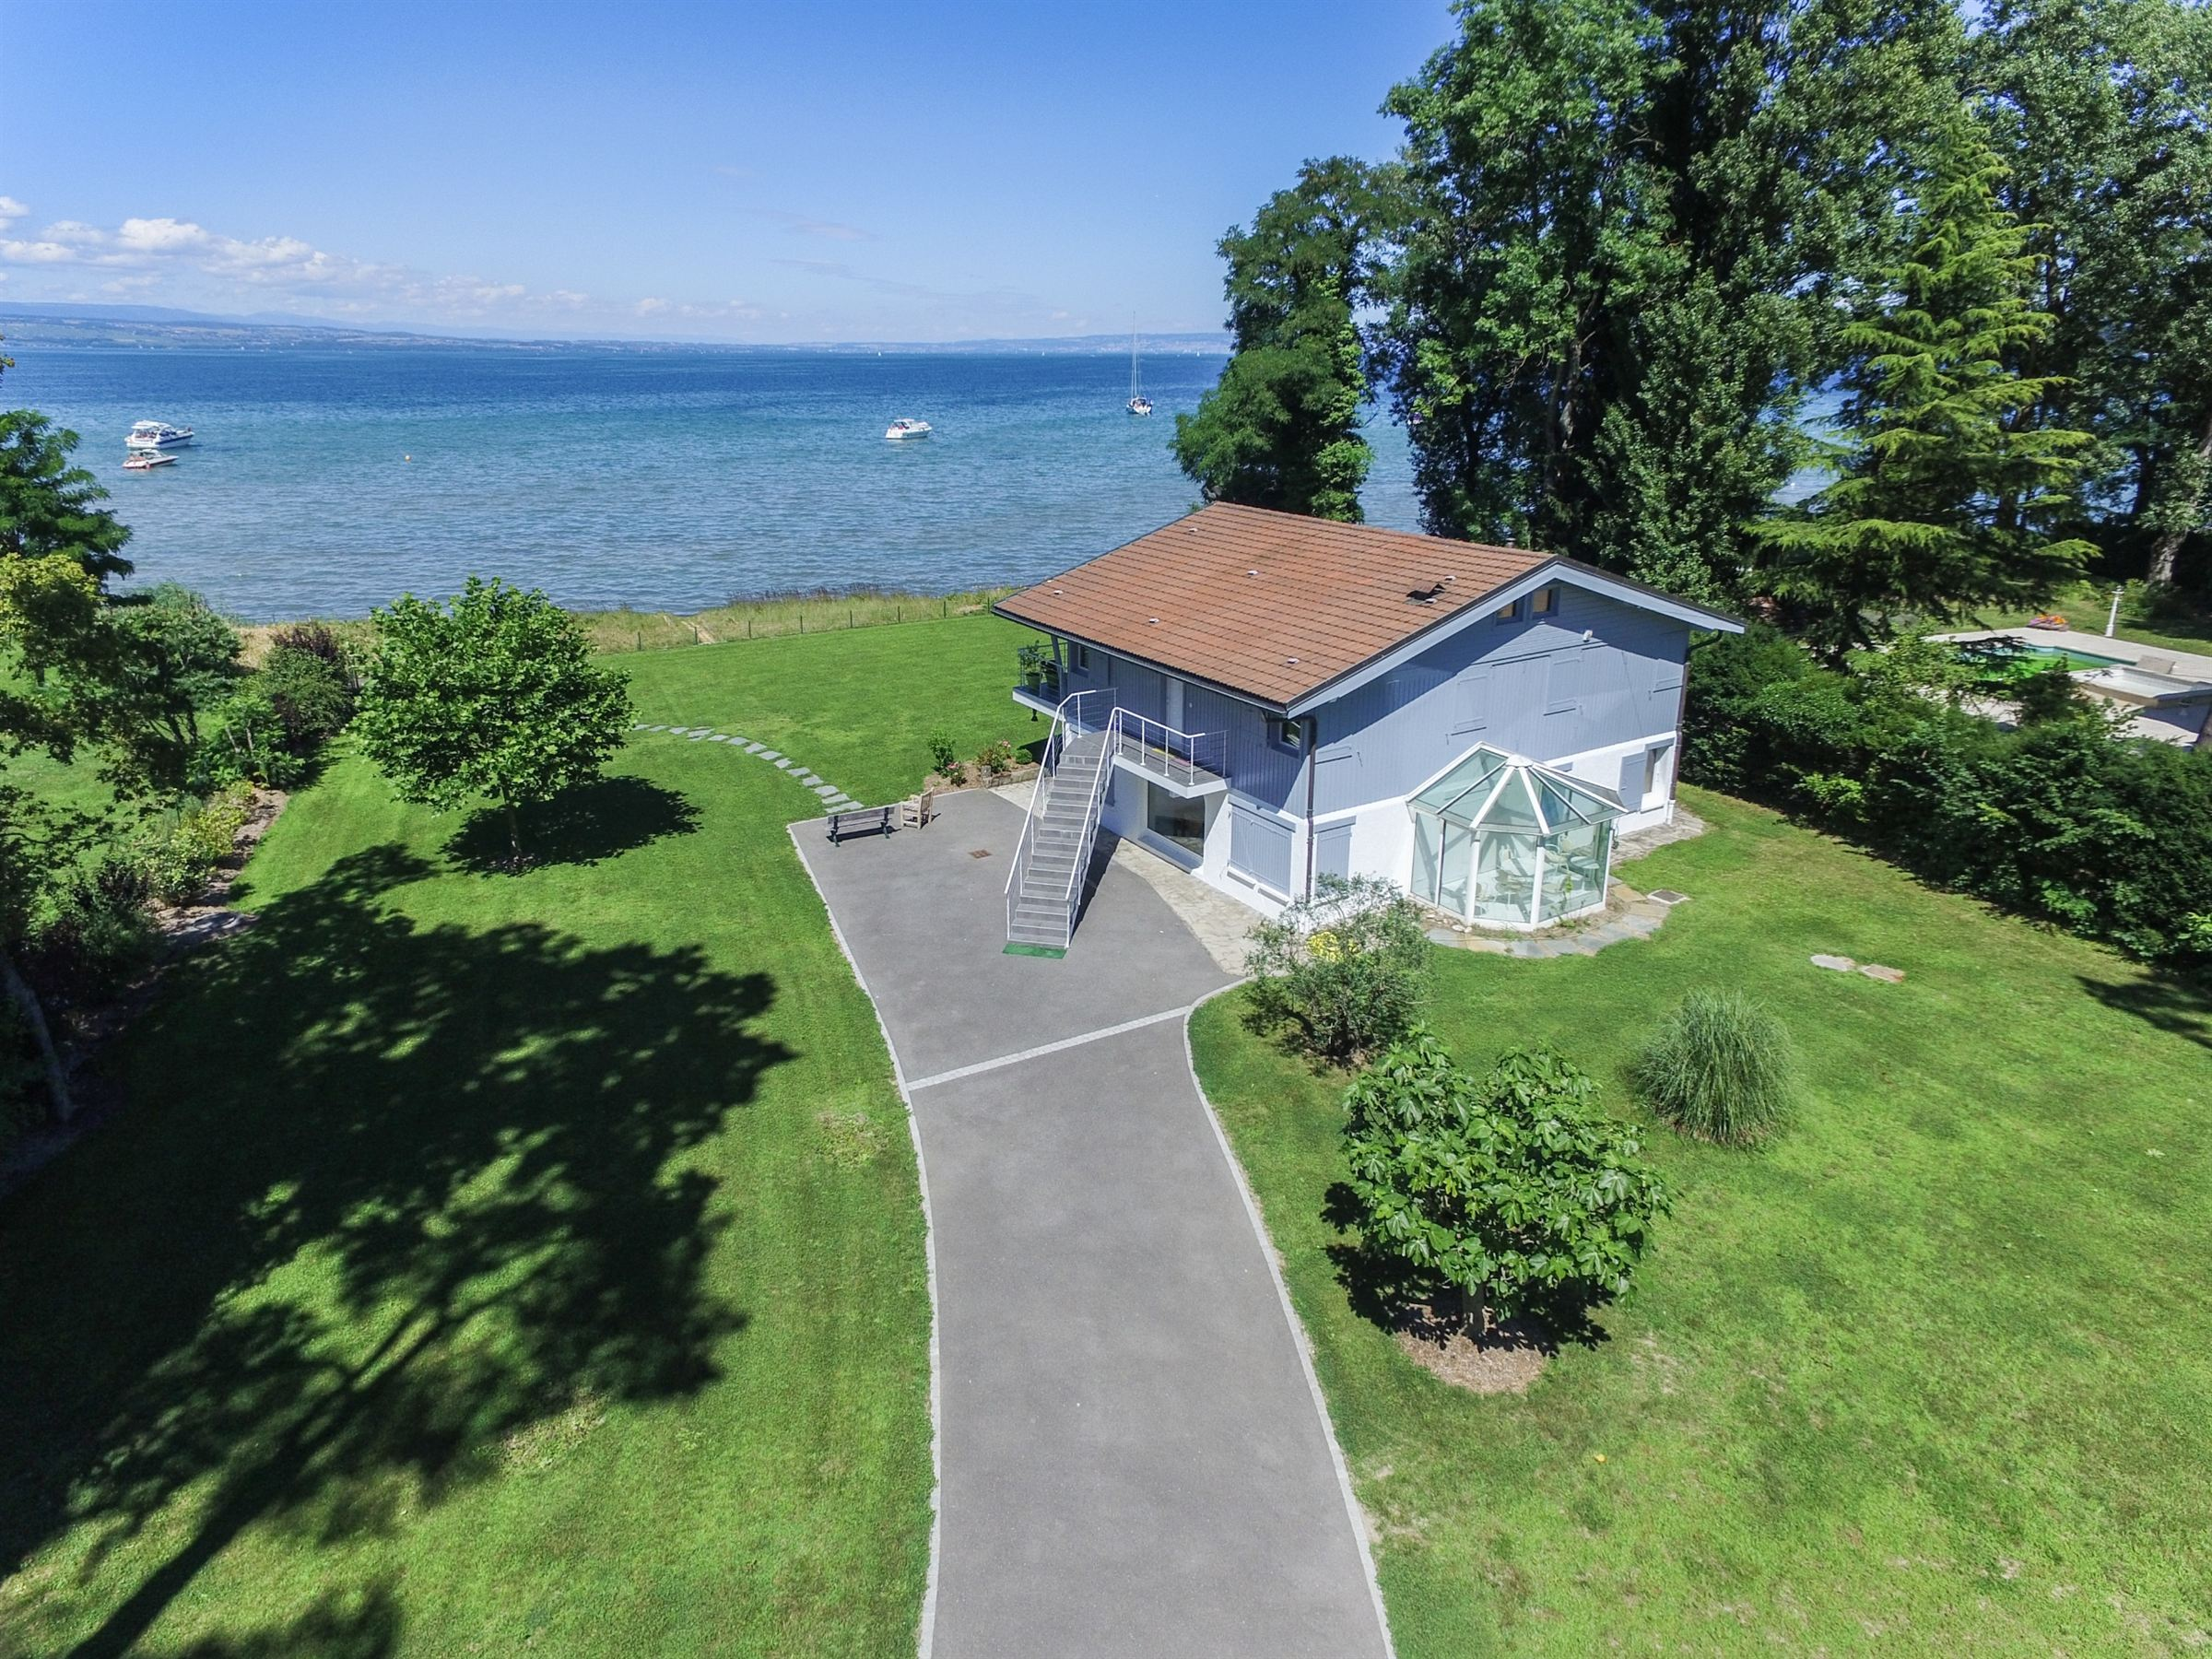 Single Family Home for Sale at waterfront Villa BETWEEN THONON AND GENEVA Sciez, Rhone-Alpes, 74140 France